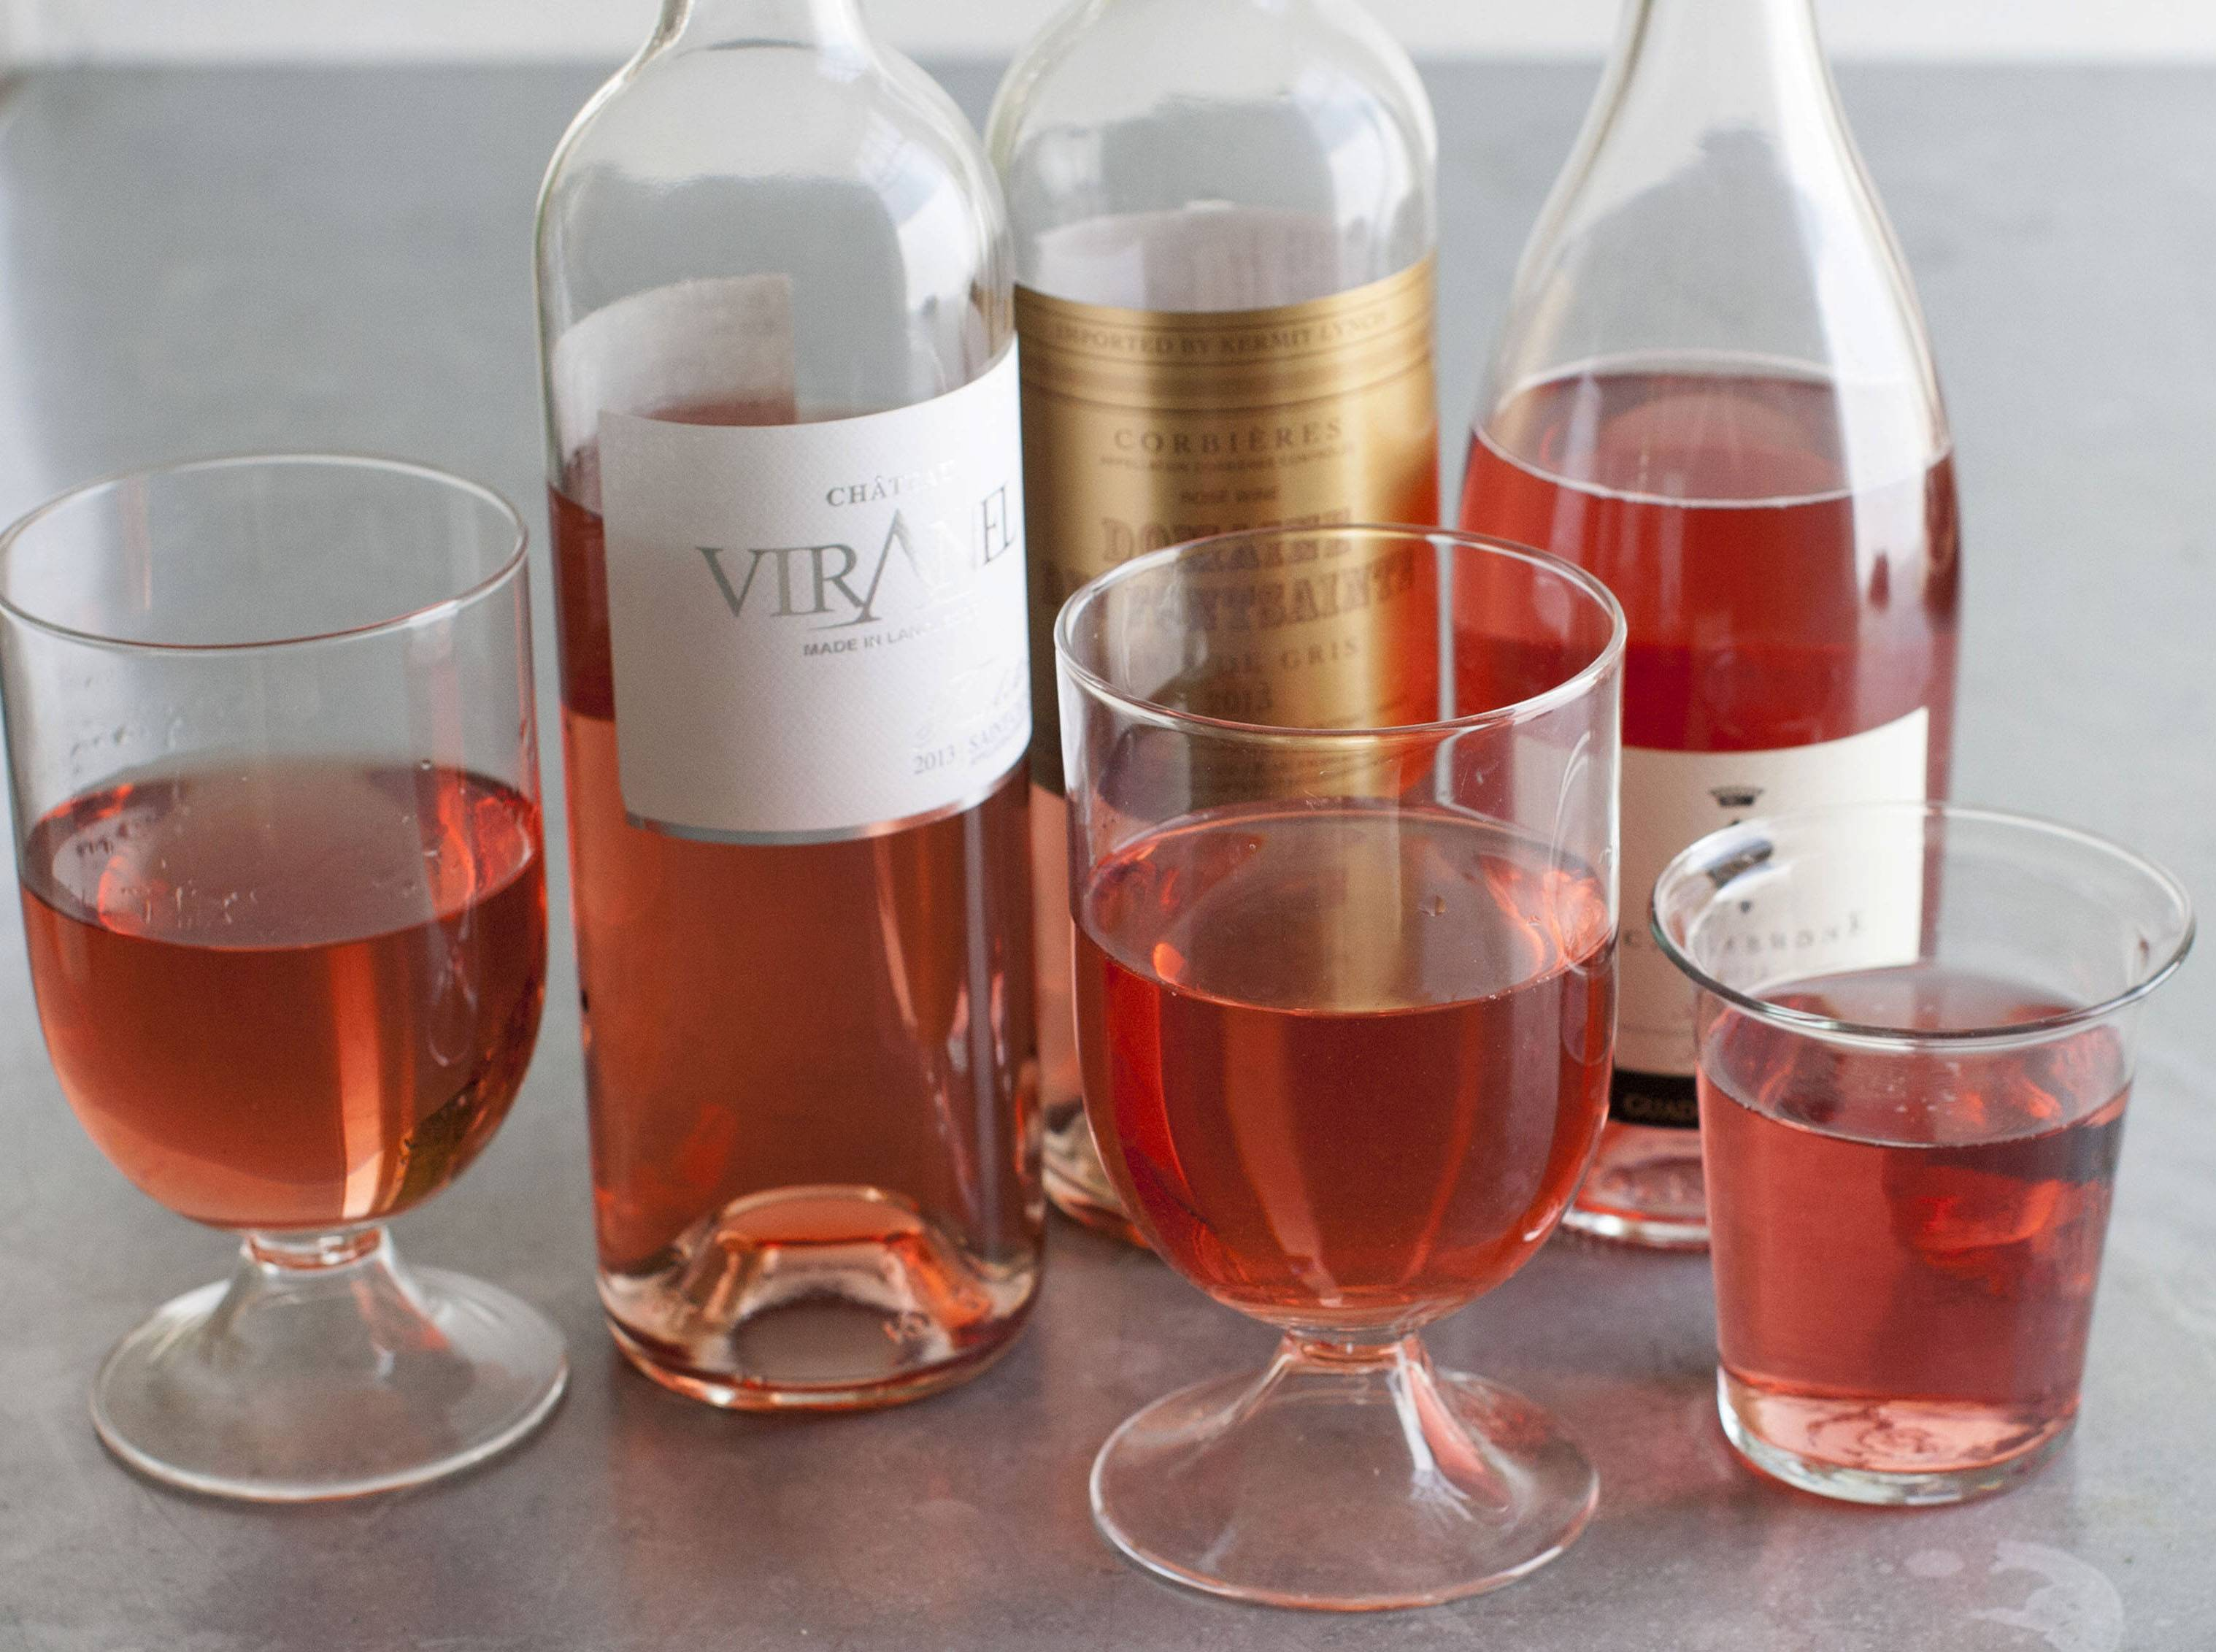 This June 2, 2014 photo shows left to right, Chateau Viranel, Domaine De Fontsainte and Scalabrone rose wines in Concord, N.H.